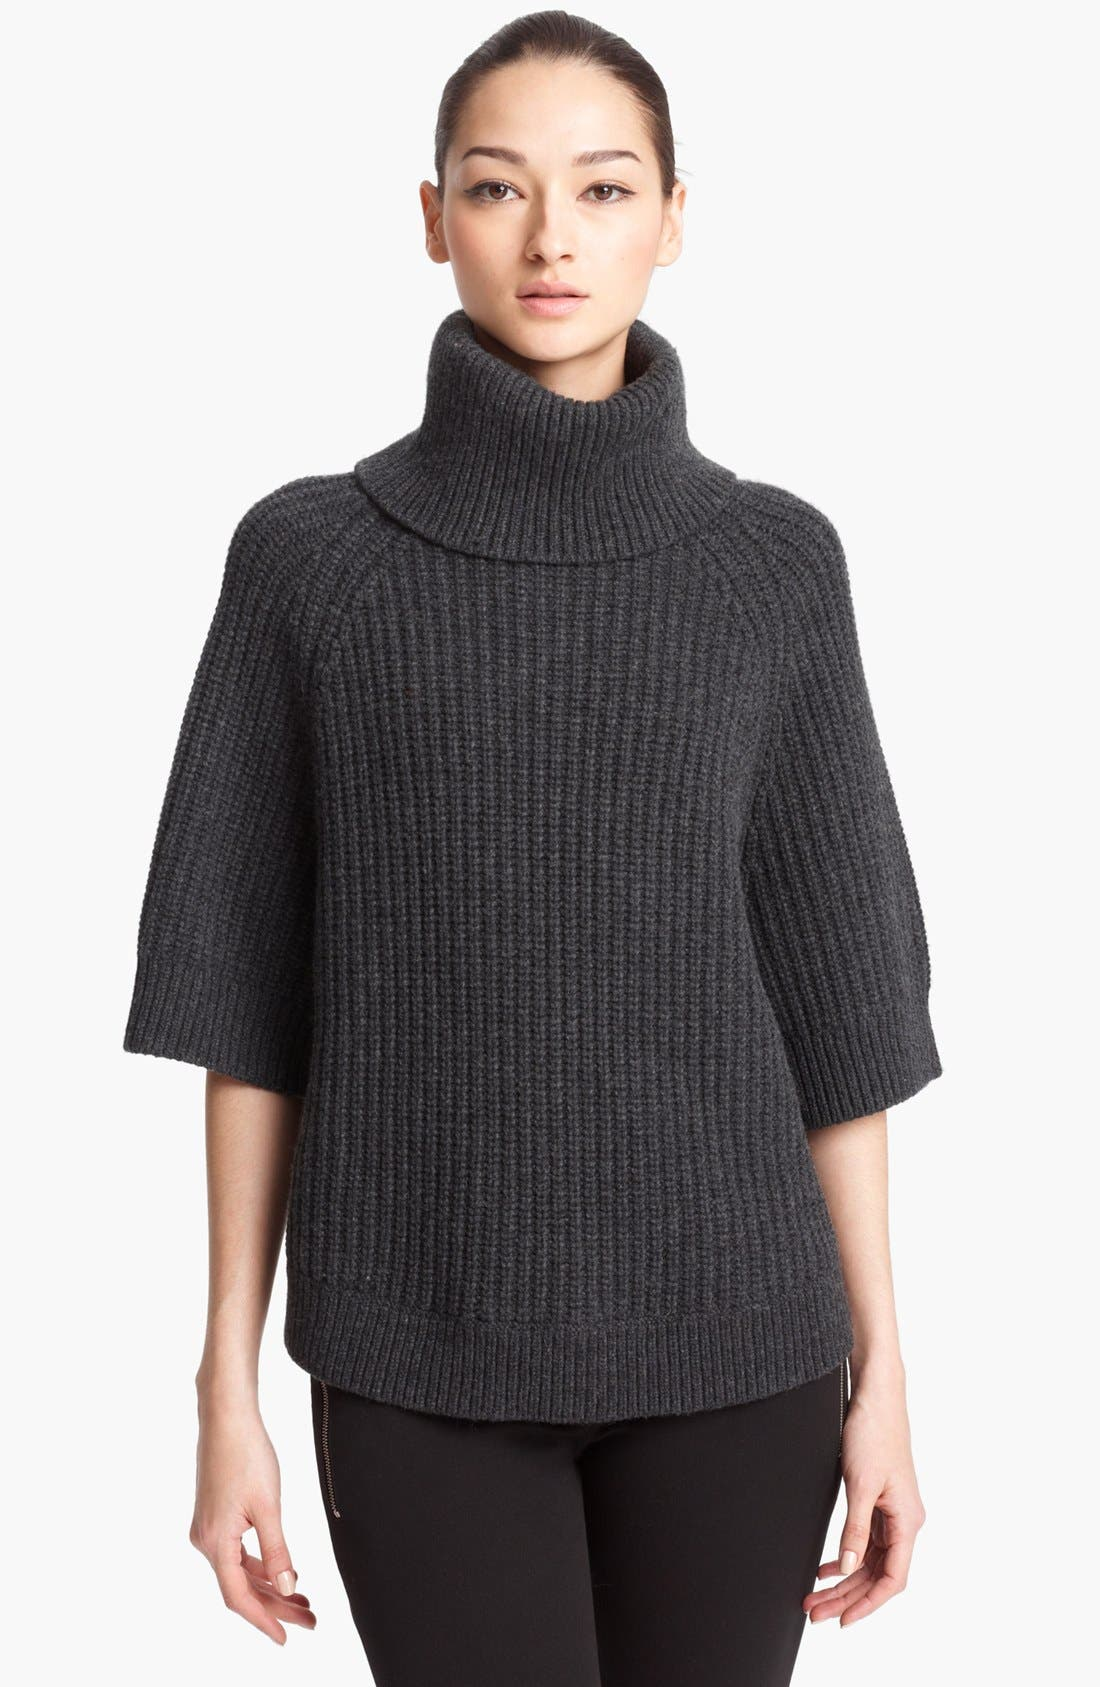 MICHAEL KORS,                             Turtleneck Sweater,                             Main thumbnail 1, color,                             020